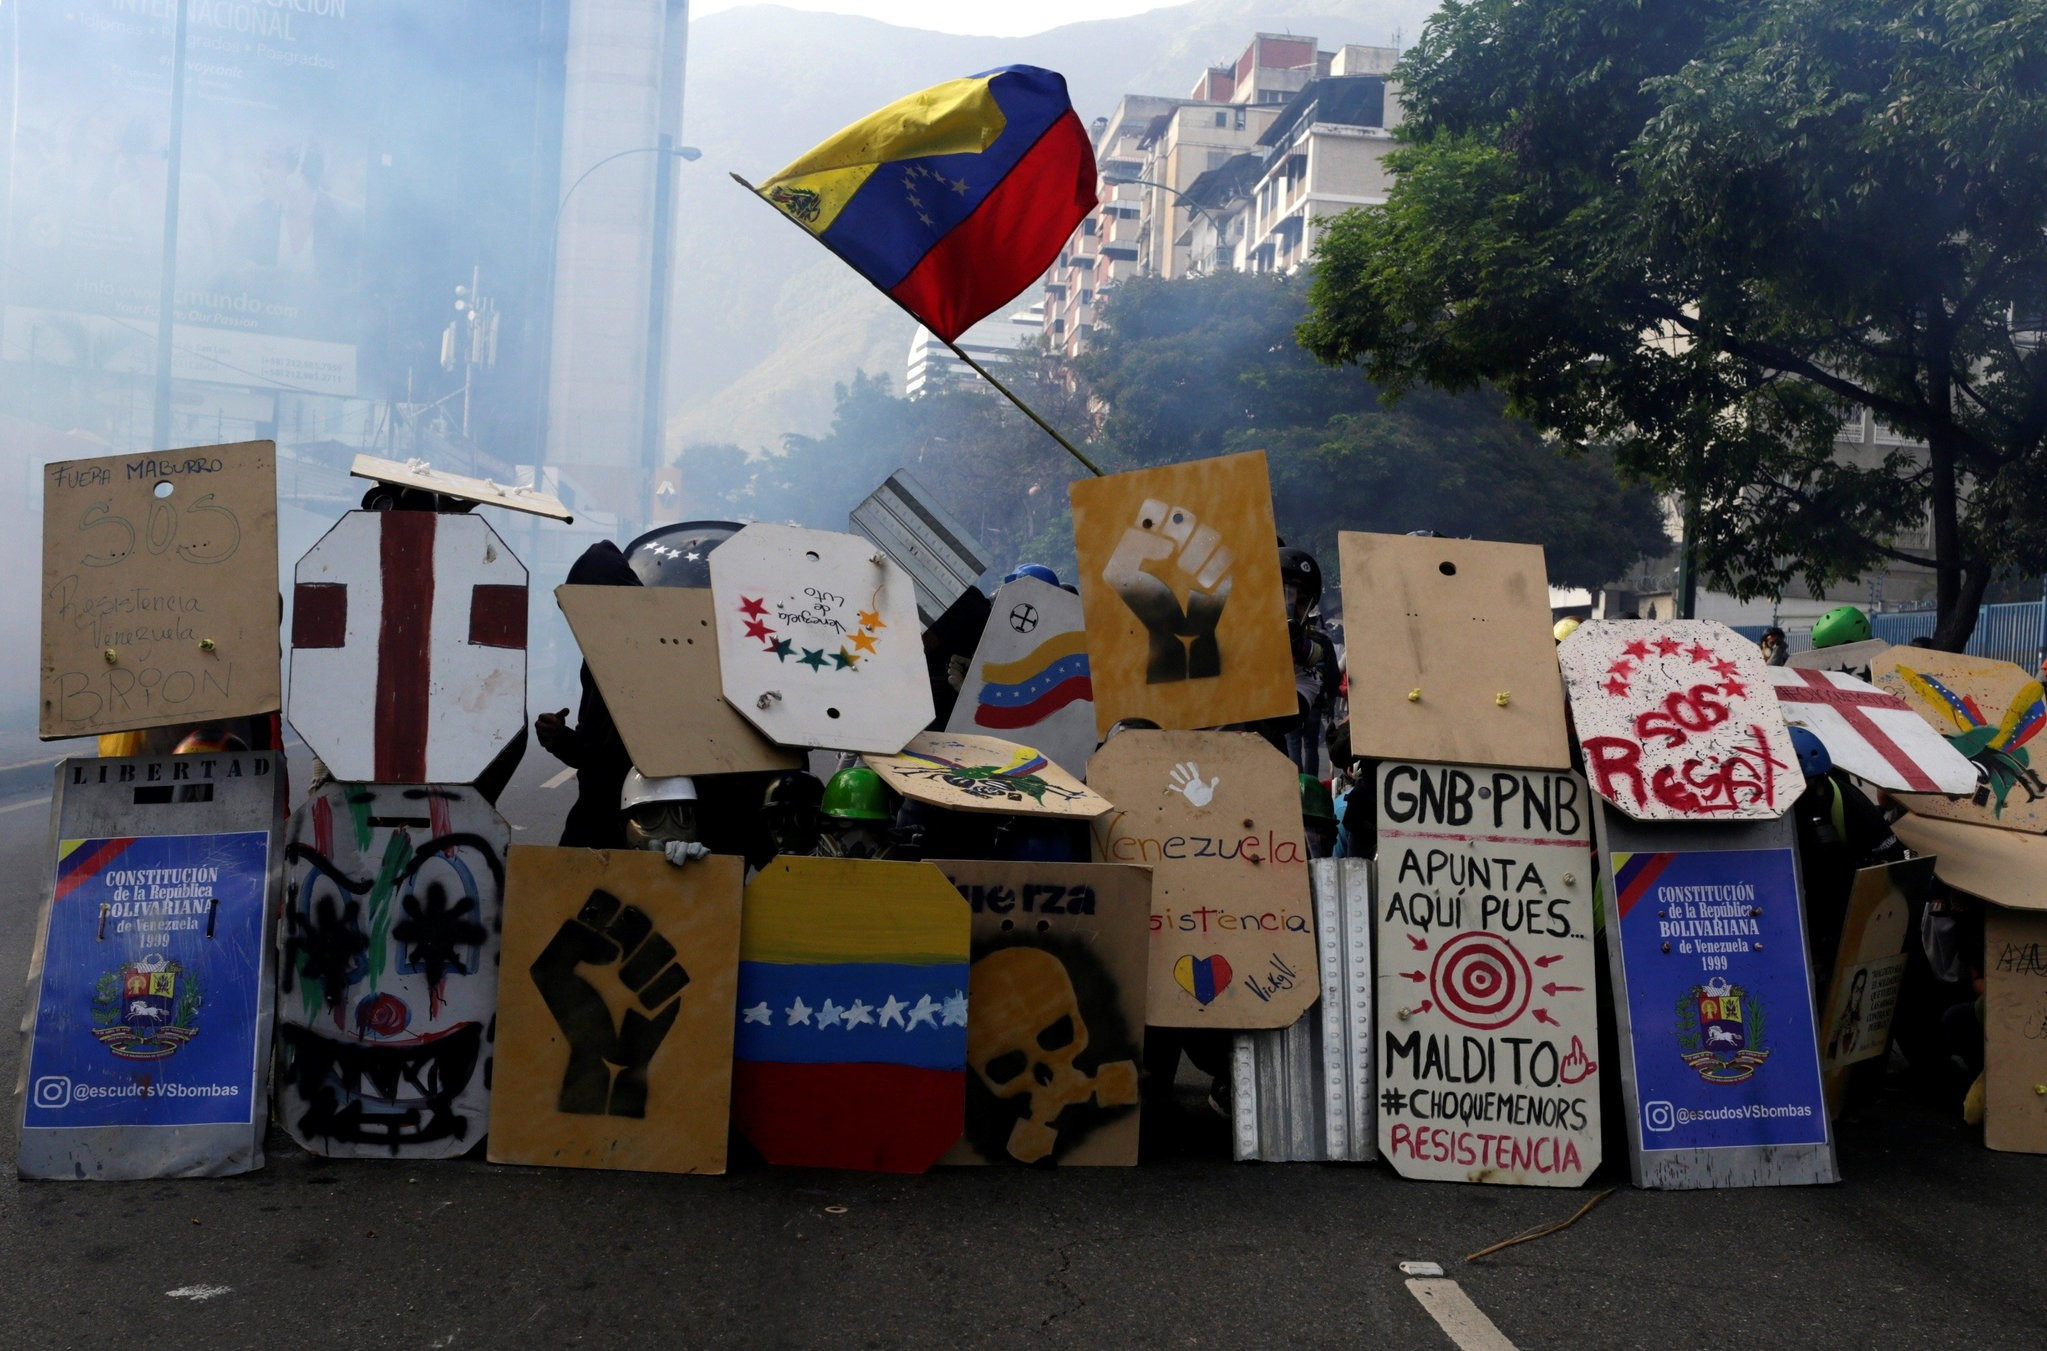 Opposition supporters use home made shields to protect themselves during a rally against President Nicolas Maduro in Caracas, Venezuela. (REUTERS Photo)